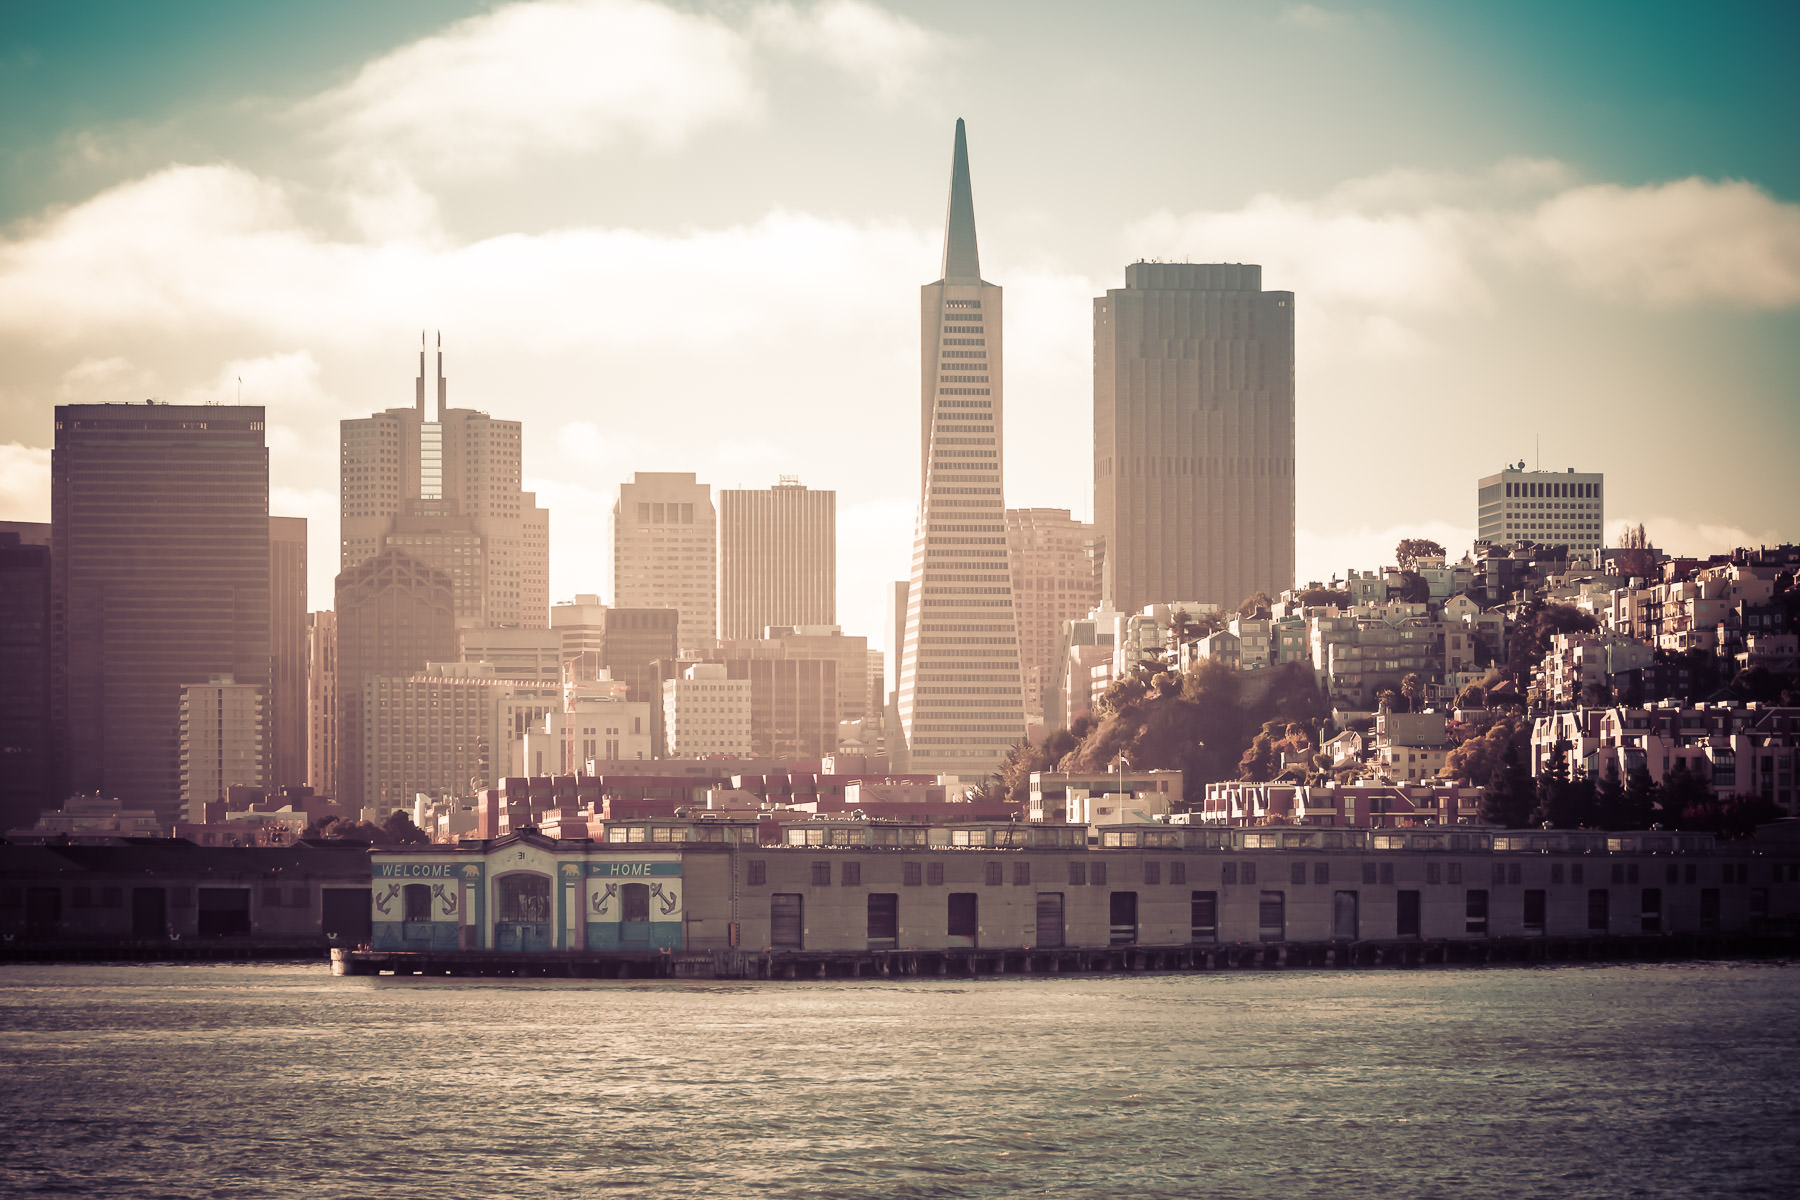 The day starts in San Francisco as the sun rises on the city.